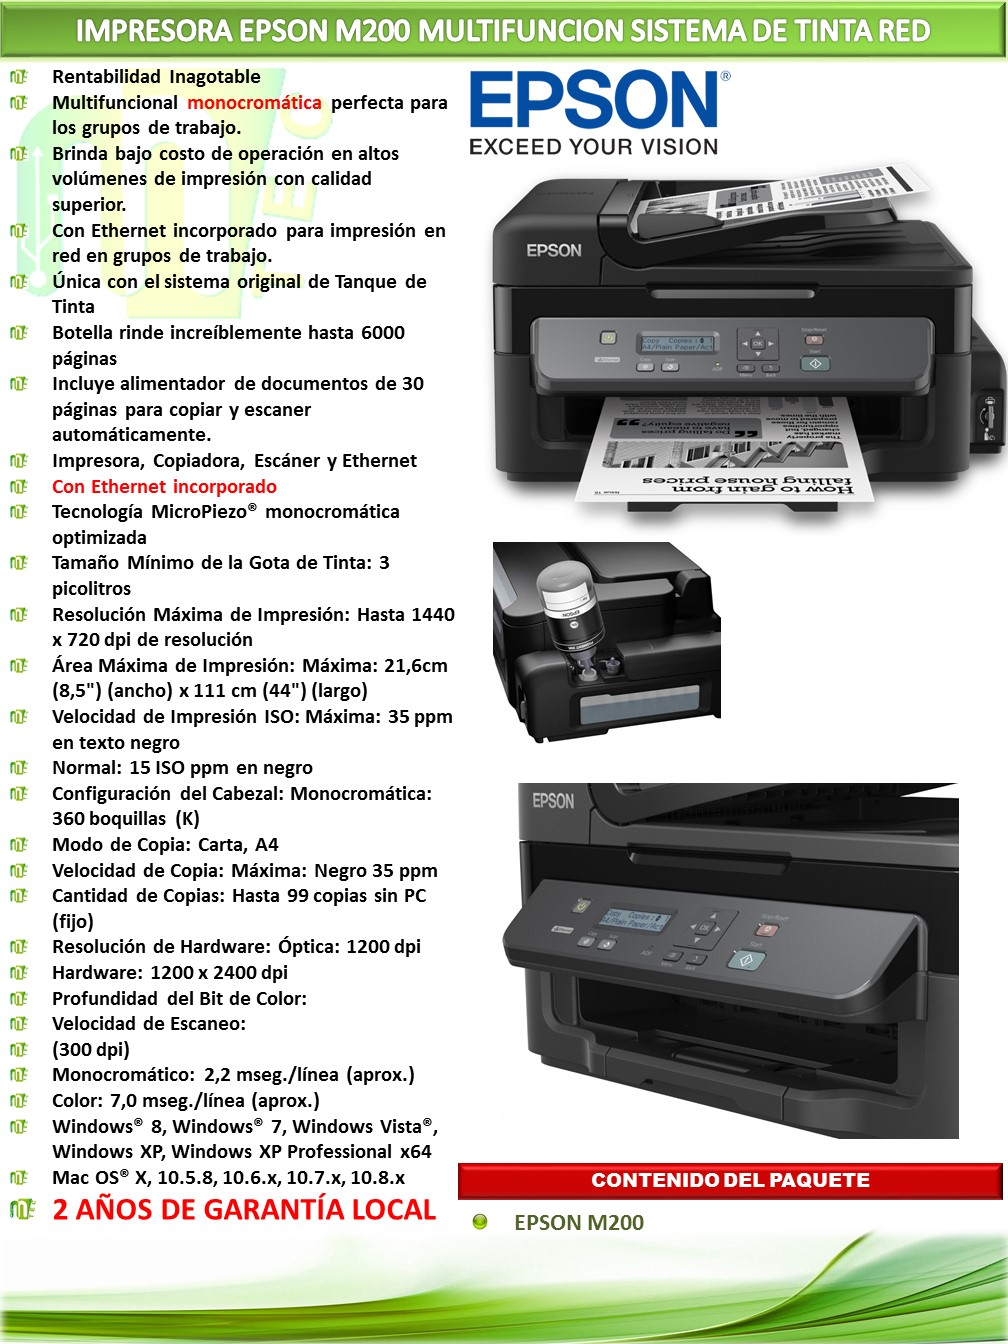 Impresora Epson Workforce M200 Mtec